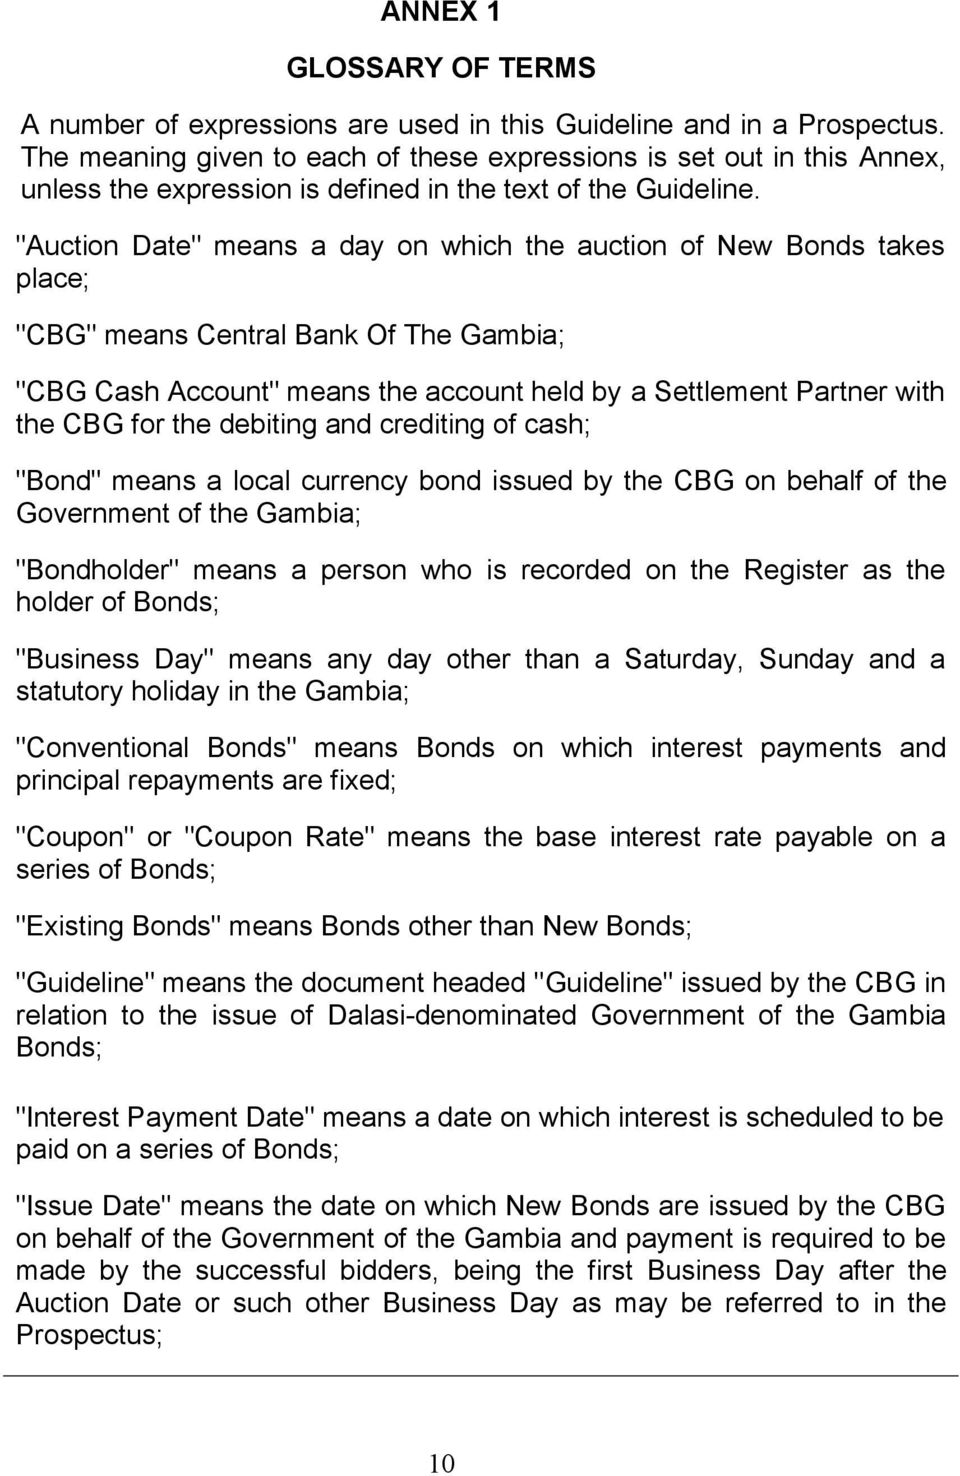 """Auction Date"" means a day on which the auction of New Bonds takes place; ""CBG"" means Central Bank Of The Gambia; ""CBG Cash Account"" means the account held by a Settlement Partner with the CBG for"